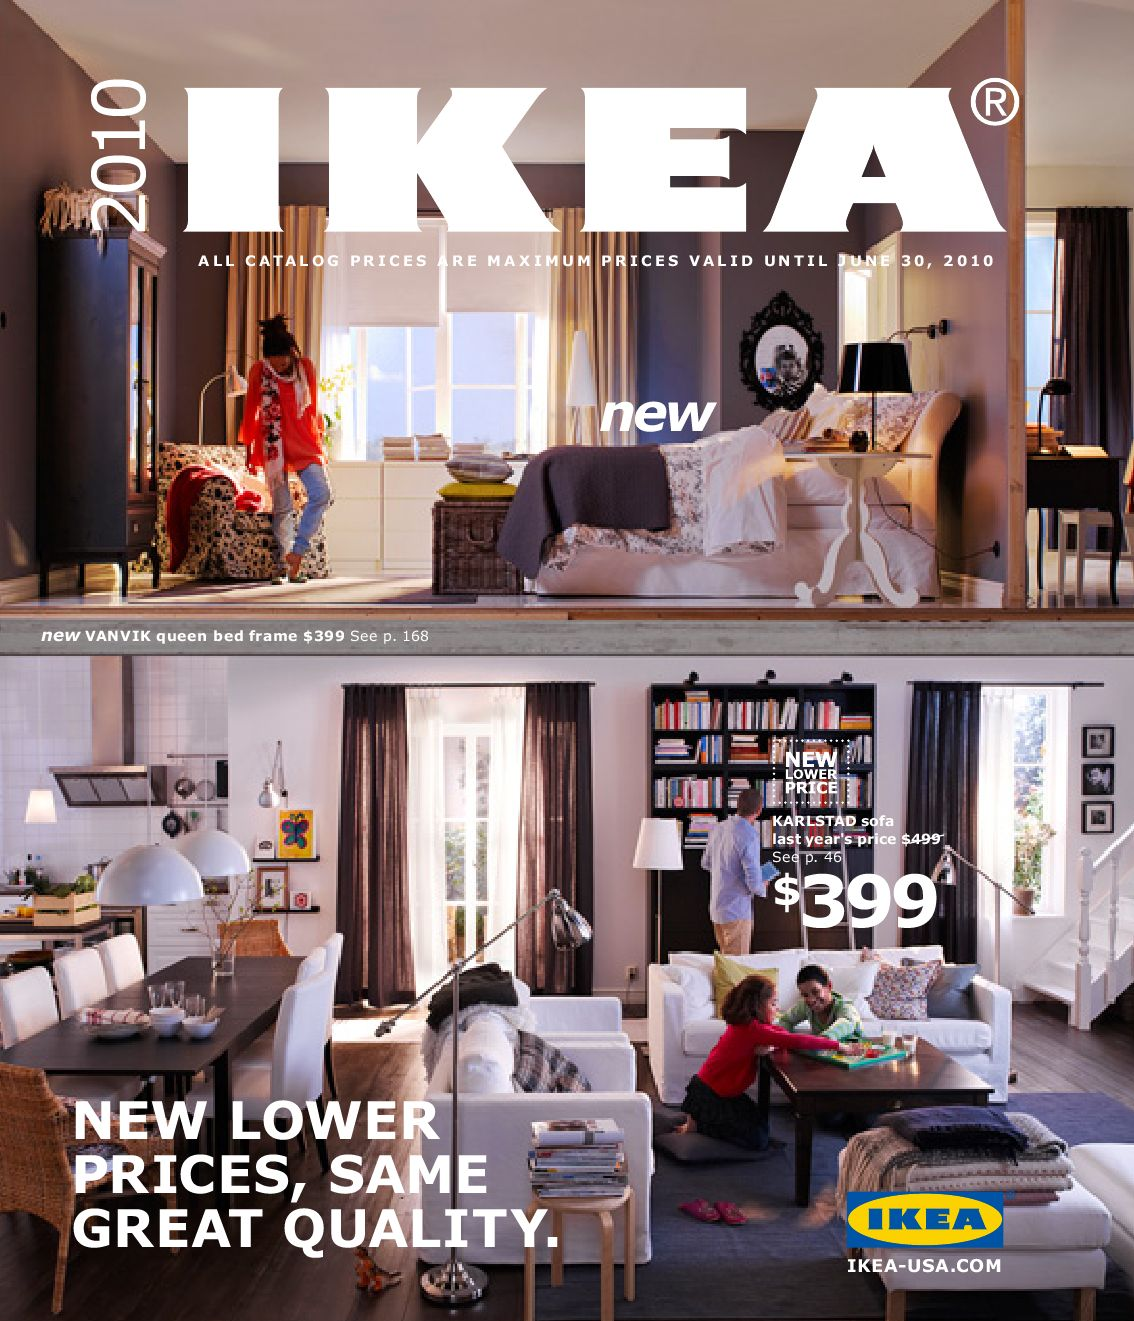 Ikea Catalog 2010 By Mansour